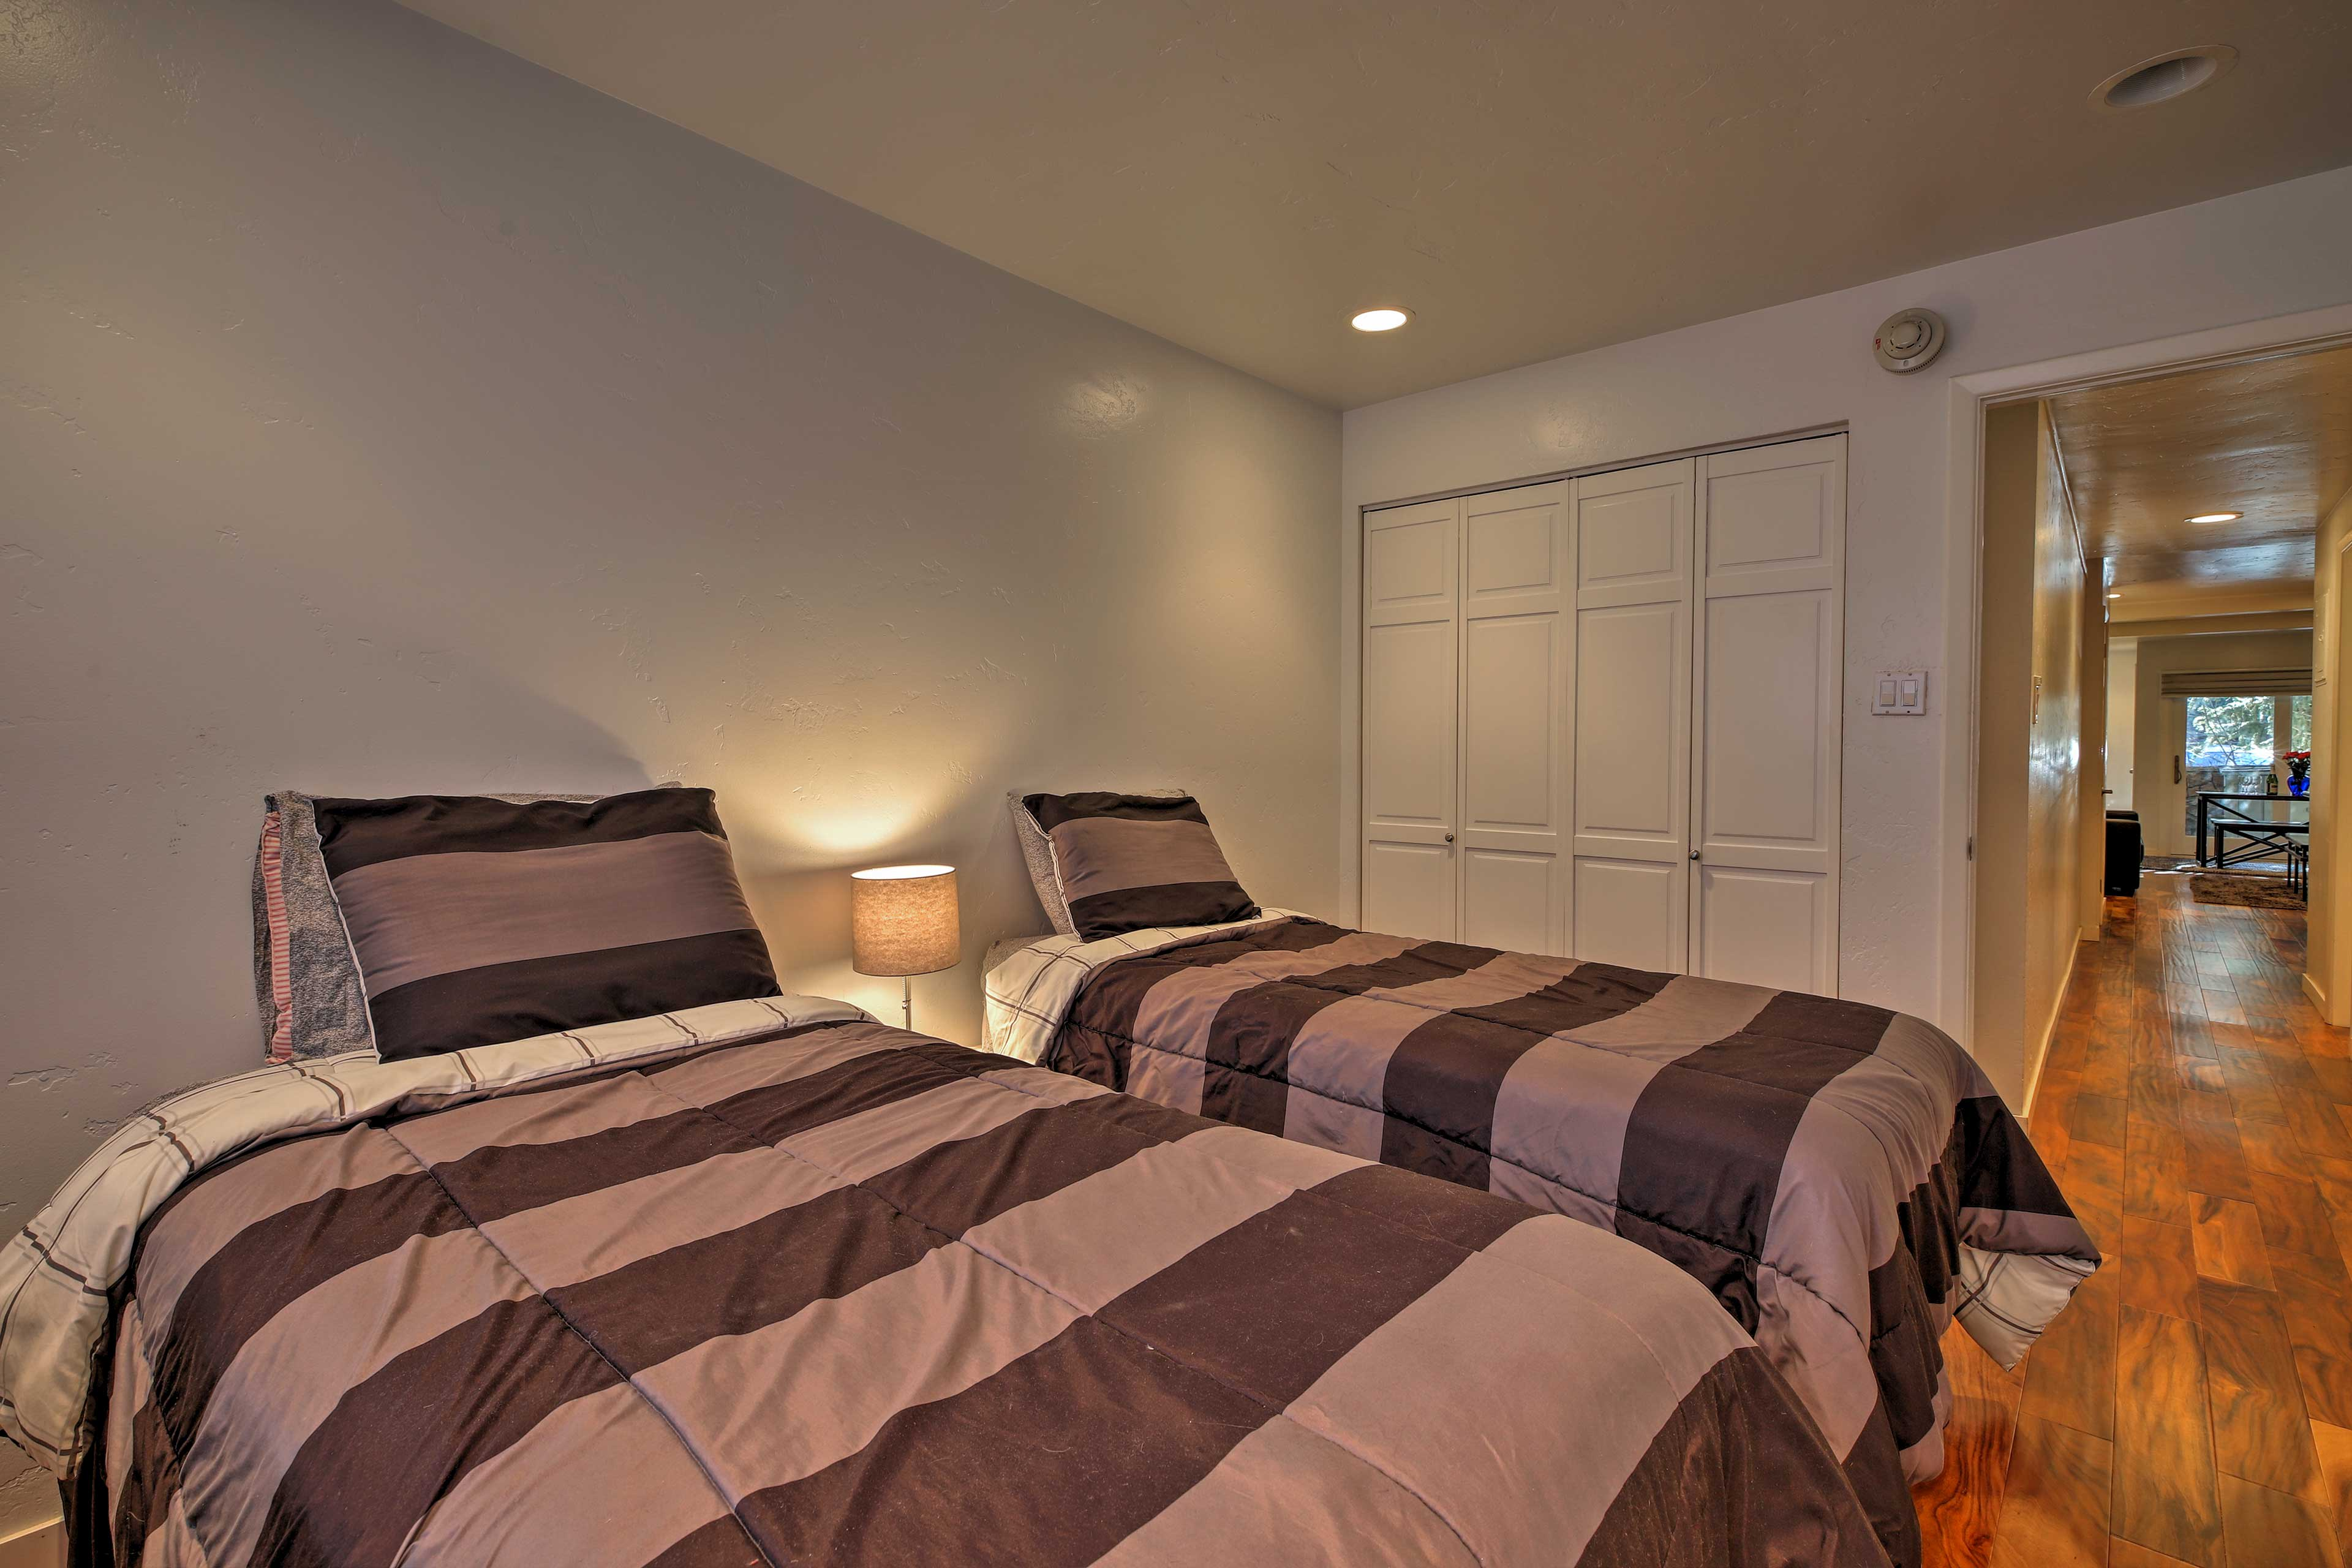 Send friends to rest up in the second bedroom.